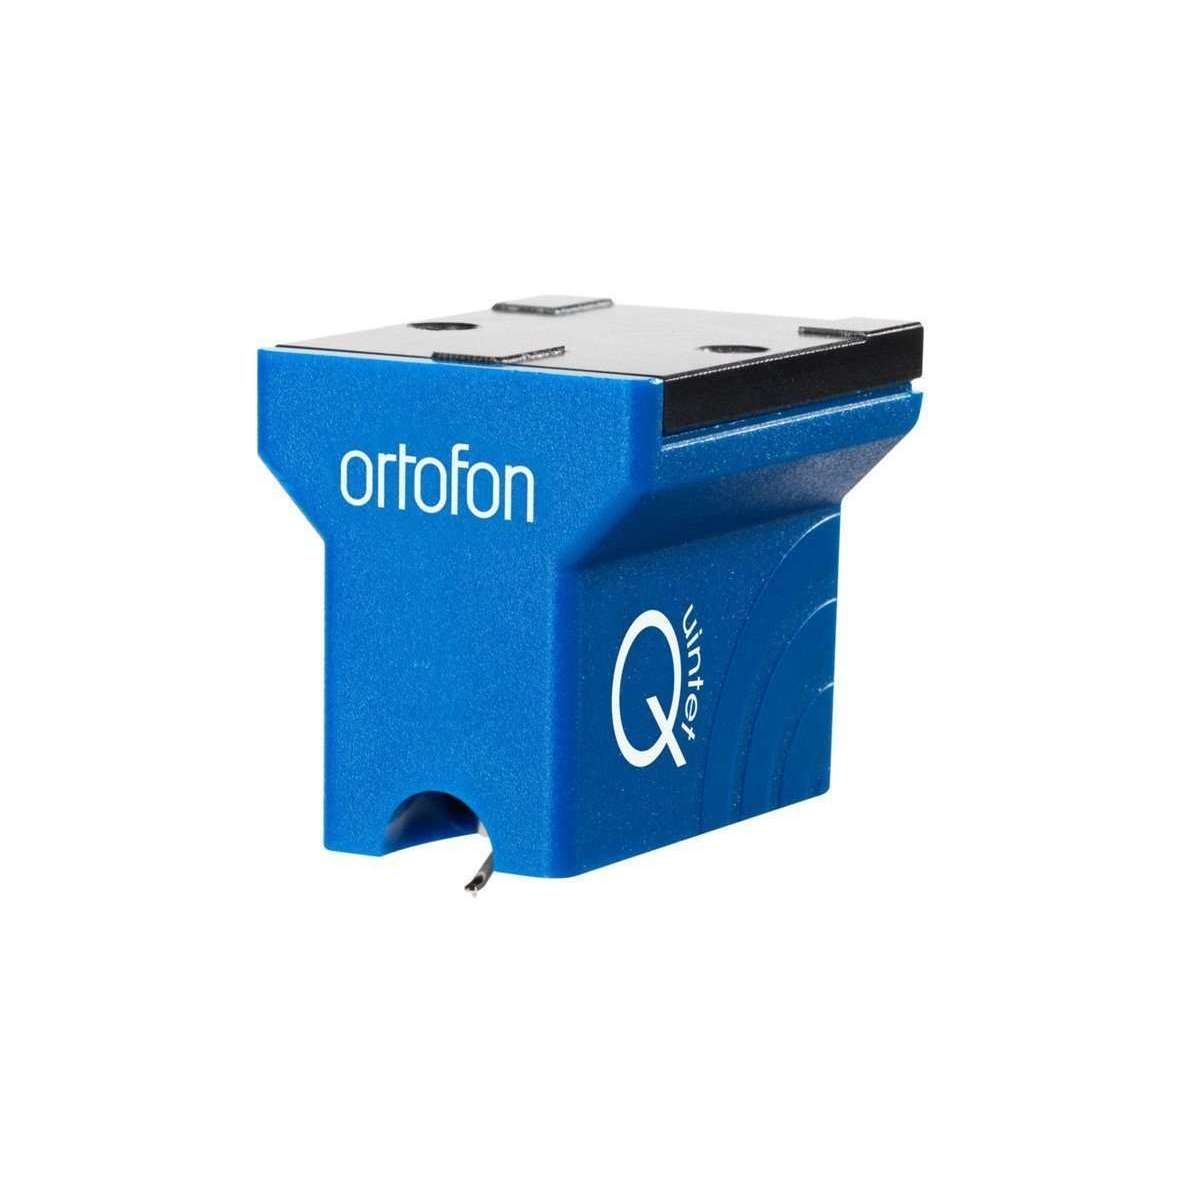 Ortofon Quintet Blue Moving Coil Cartridge - Default Title - Call SpatialOnline 0345 557 7334